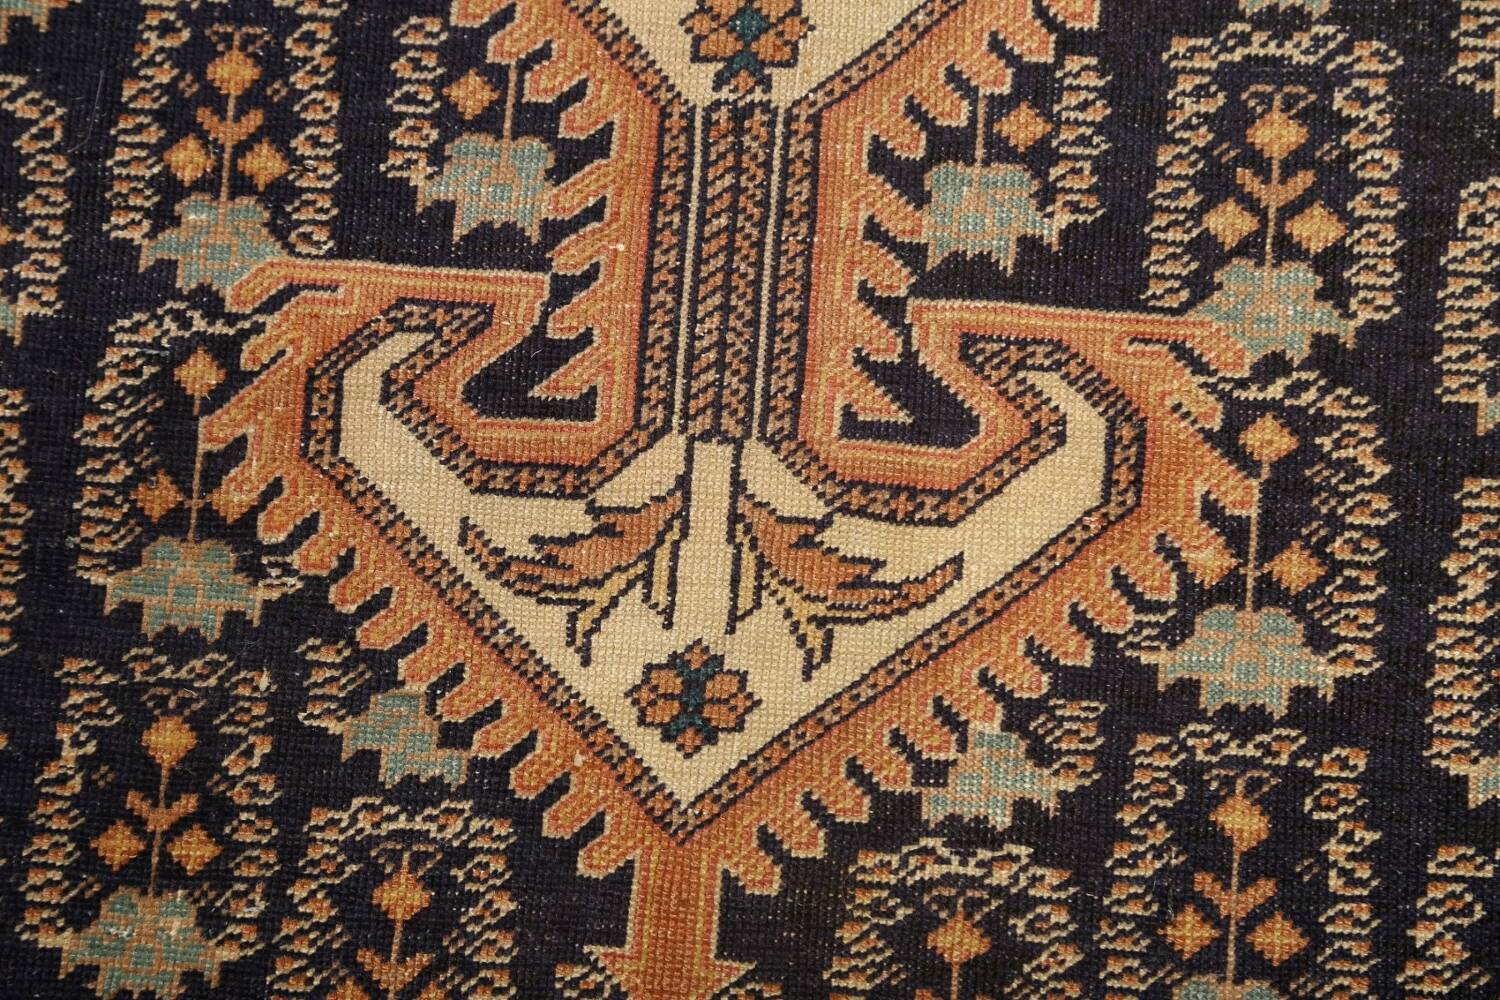 Antique 100% Vegetable Dye Sultanabad Persian Area Rug 4x5 image 9